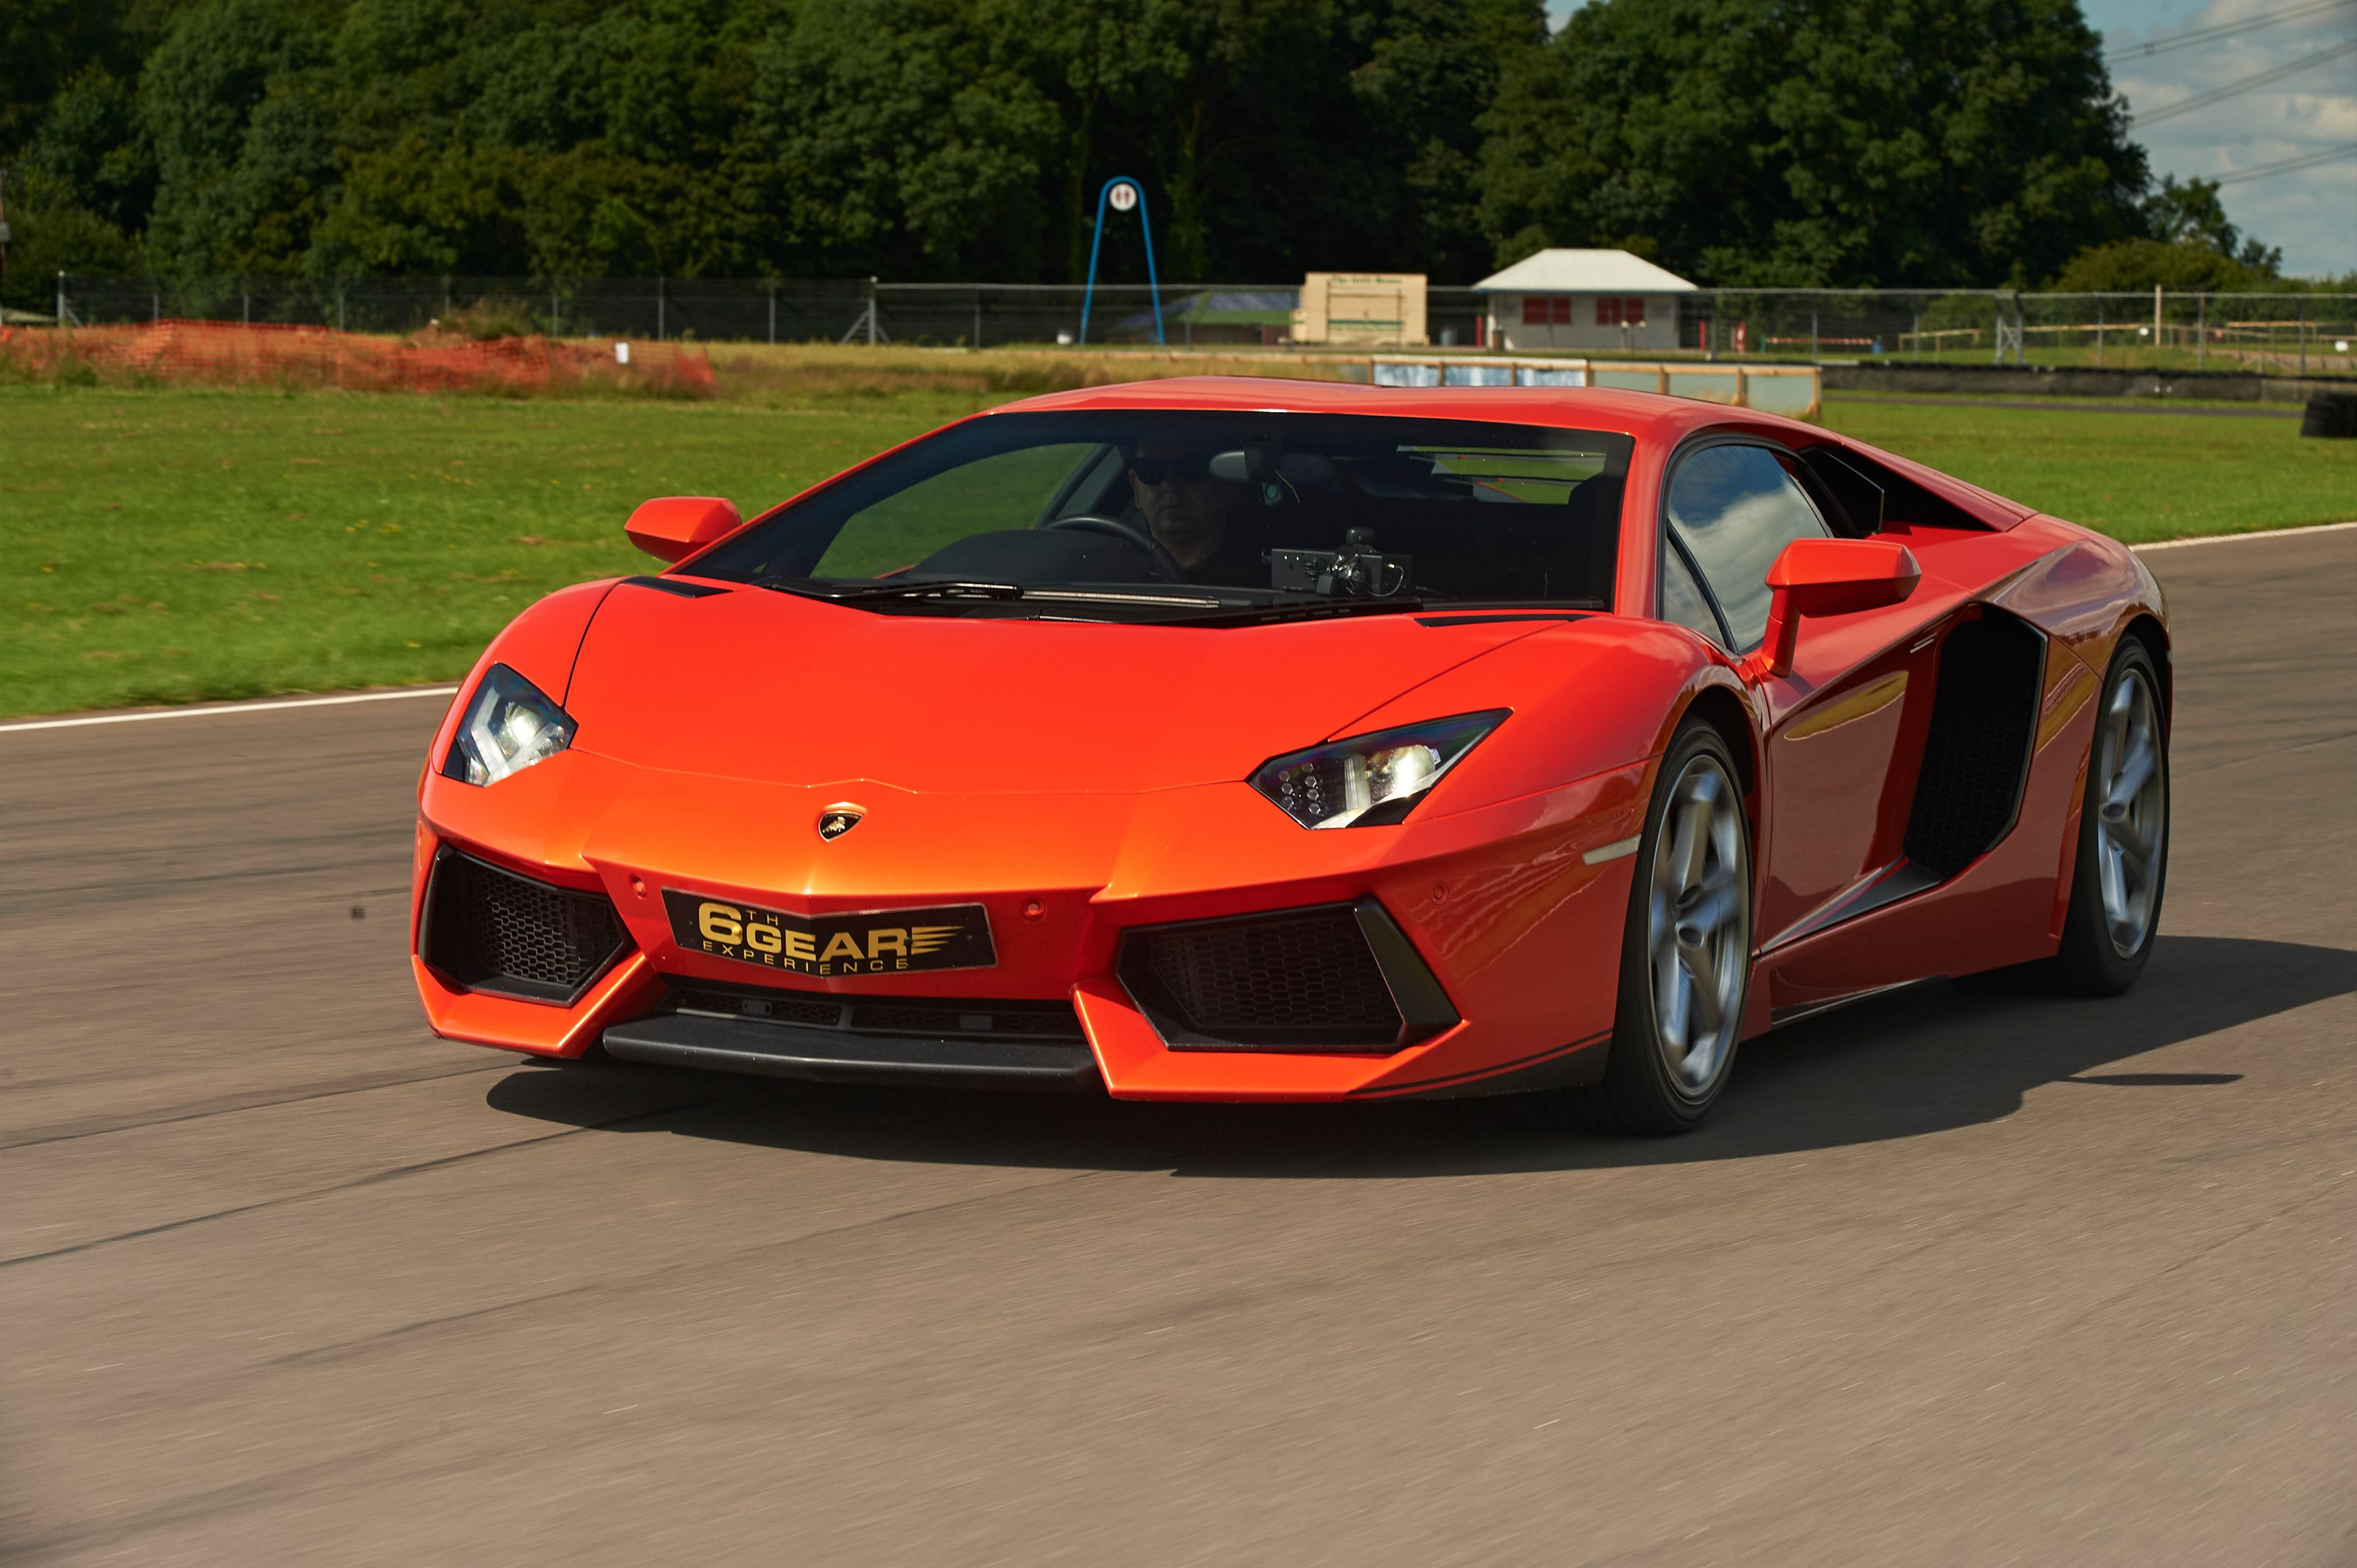 Pickup truck racing together with Lamborghini Aventador Driving Experience as well F1 Circuits 20142018 Melbourne Grand Prix Circuit Version 2 likewise Fitness Training together with Favorite Drivers. on race car circuits